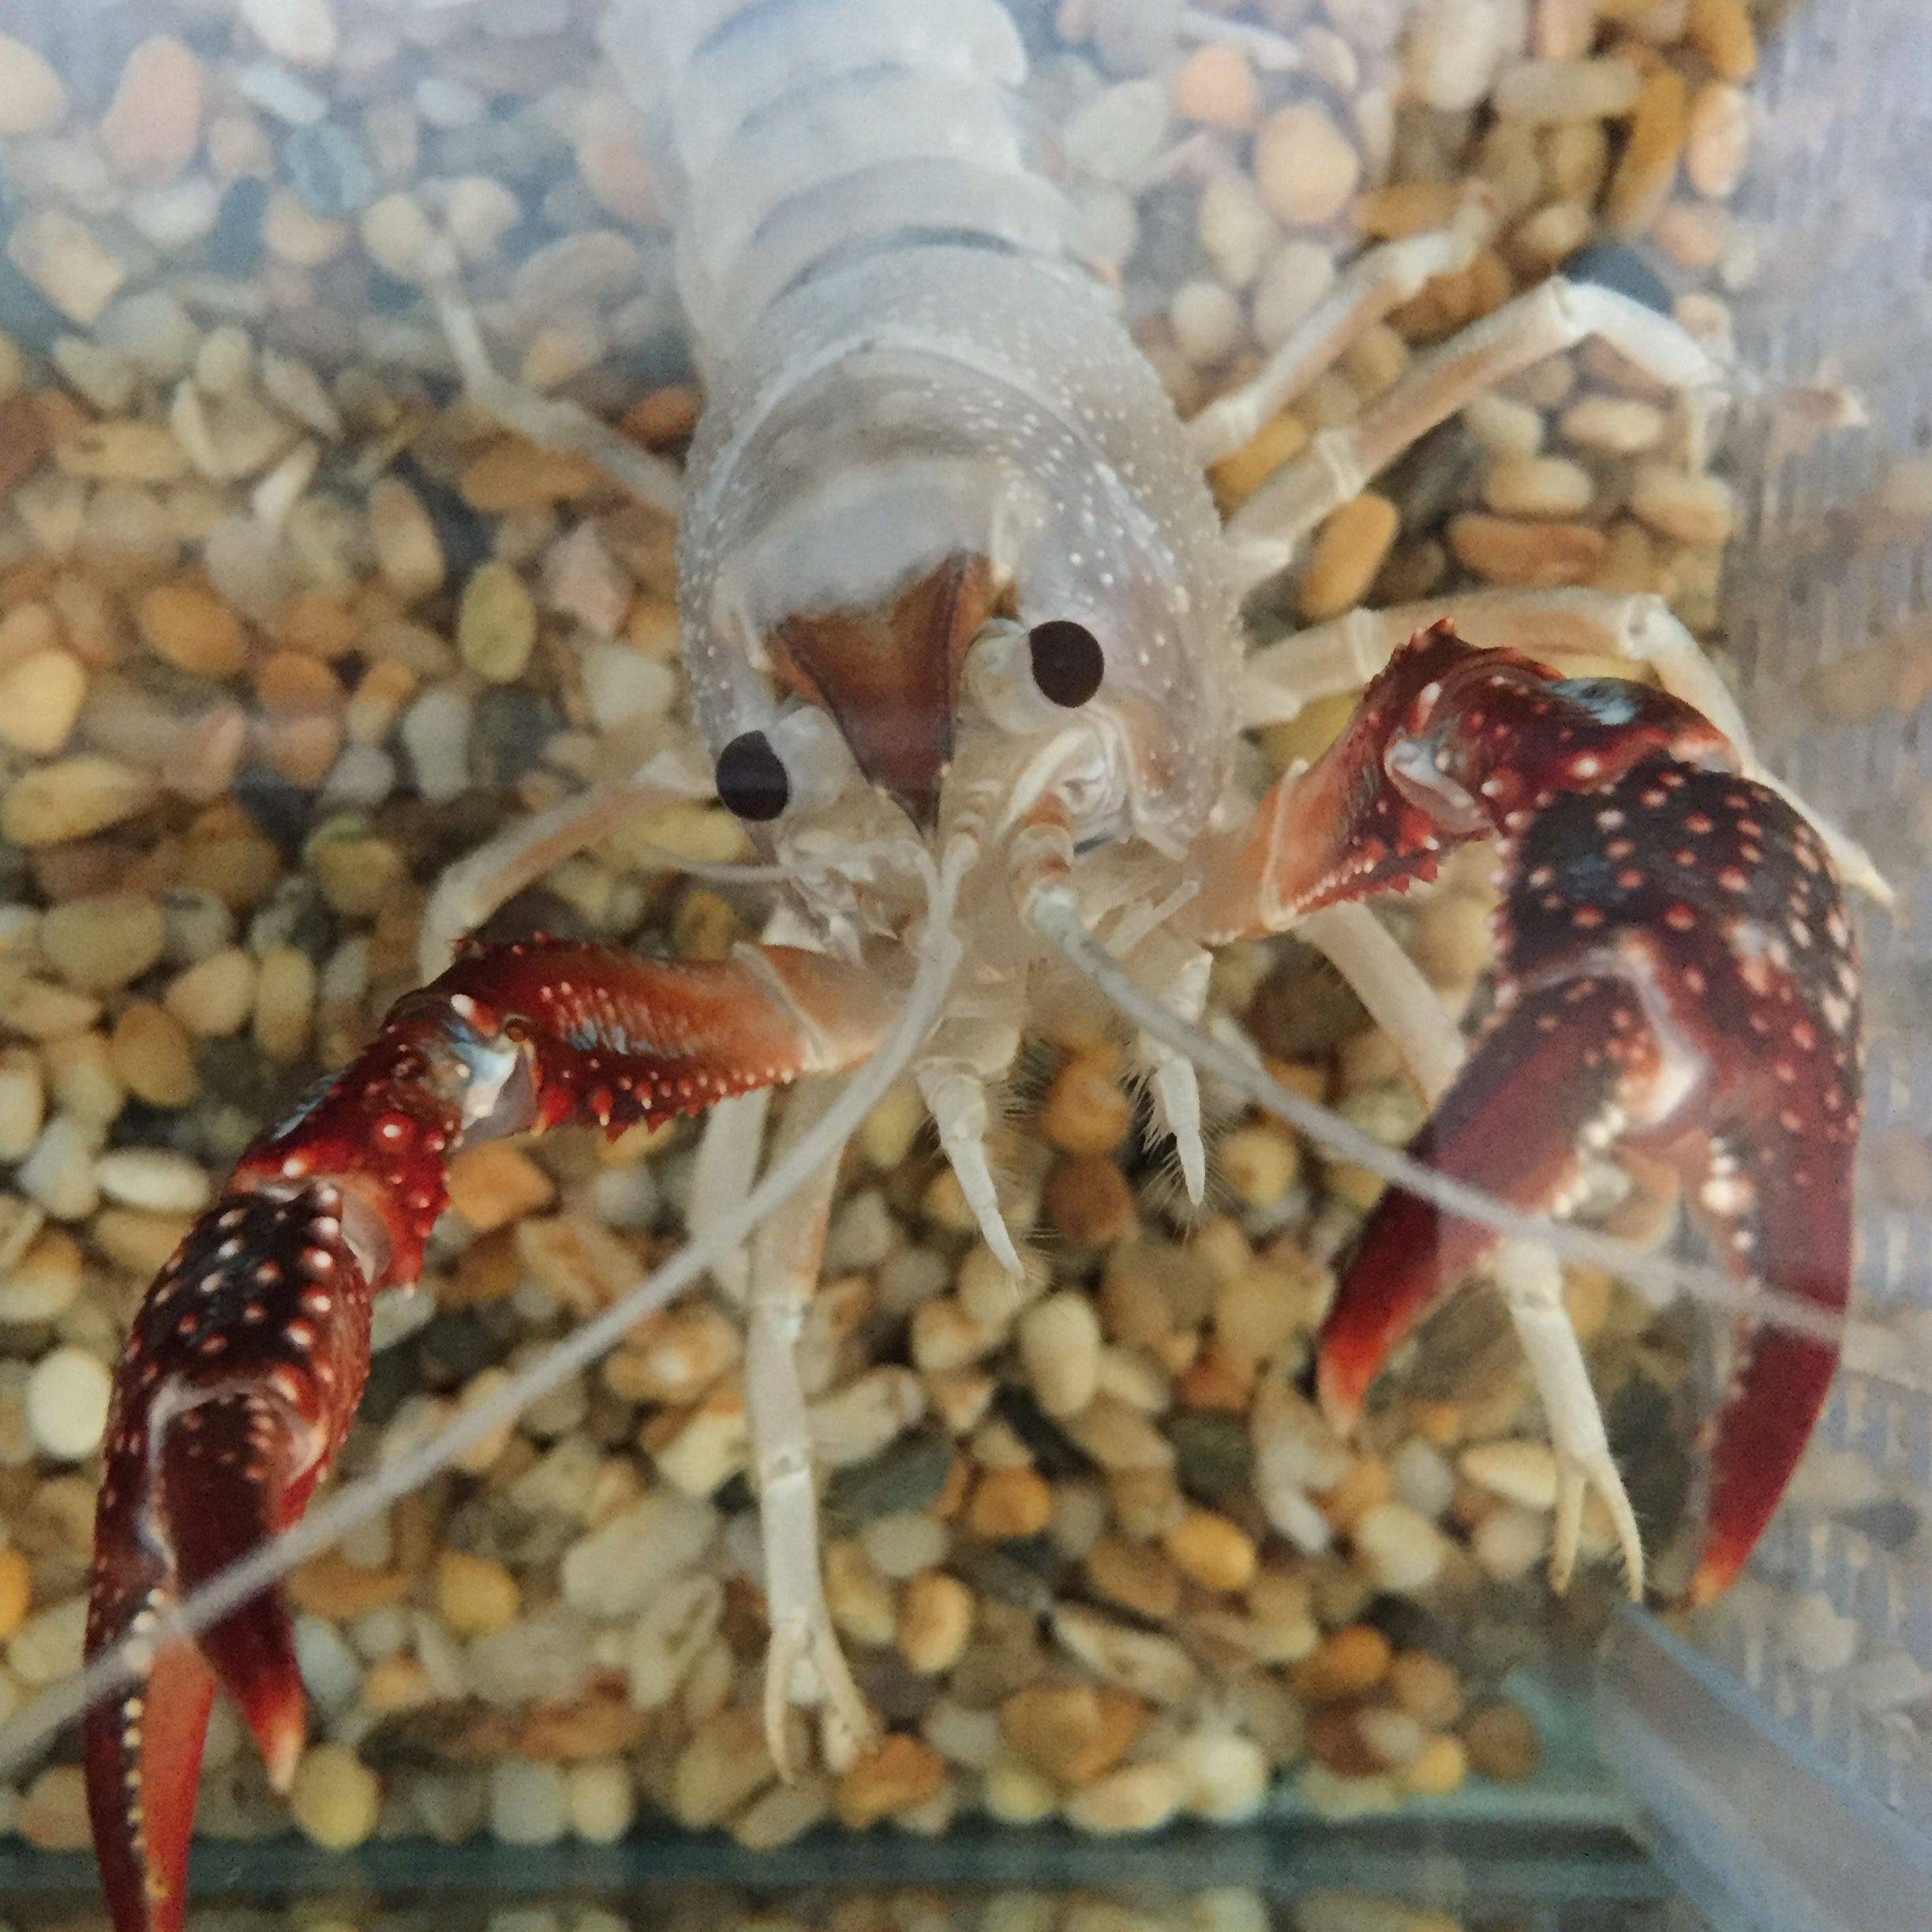 Pin by Andromeda on Crustaceans